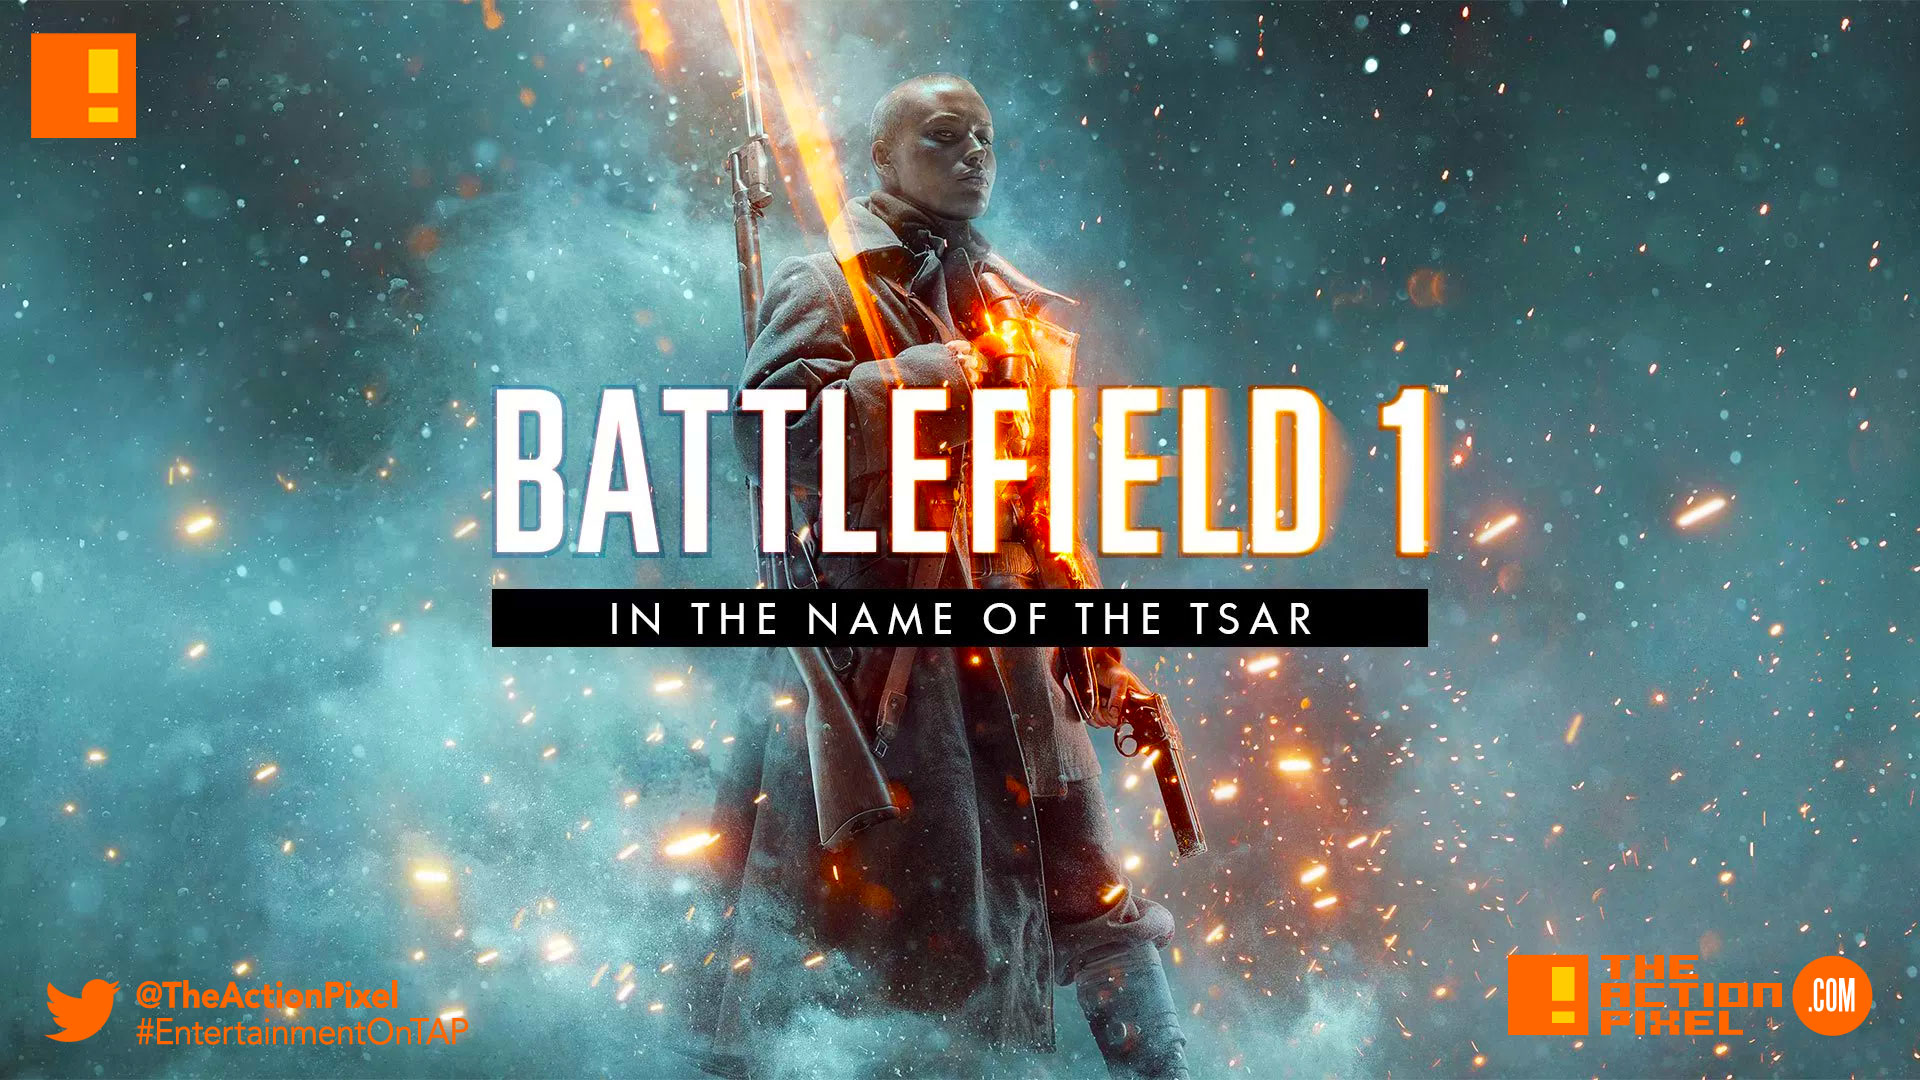 in the name of the tsar, battlefield 1, world war 1, wwI,ww1, trailer, reveal trailer, ea dice, electronic arts, ea, reveal trailer, trailer, fps, first person shooter